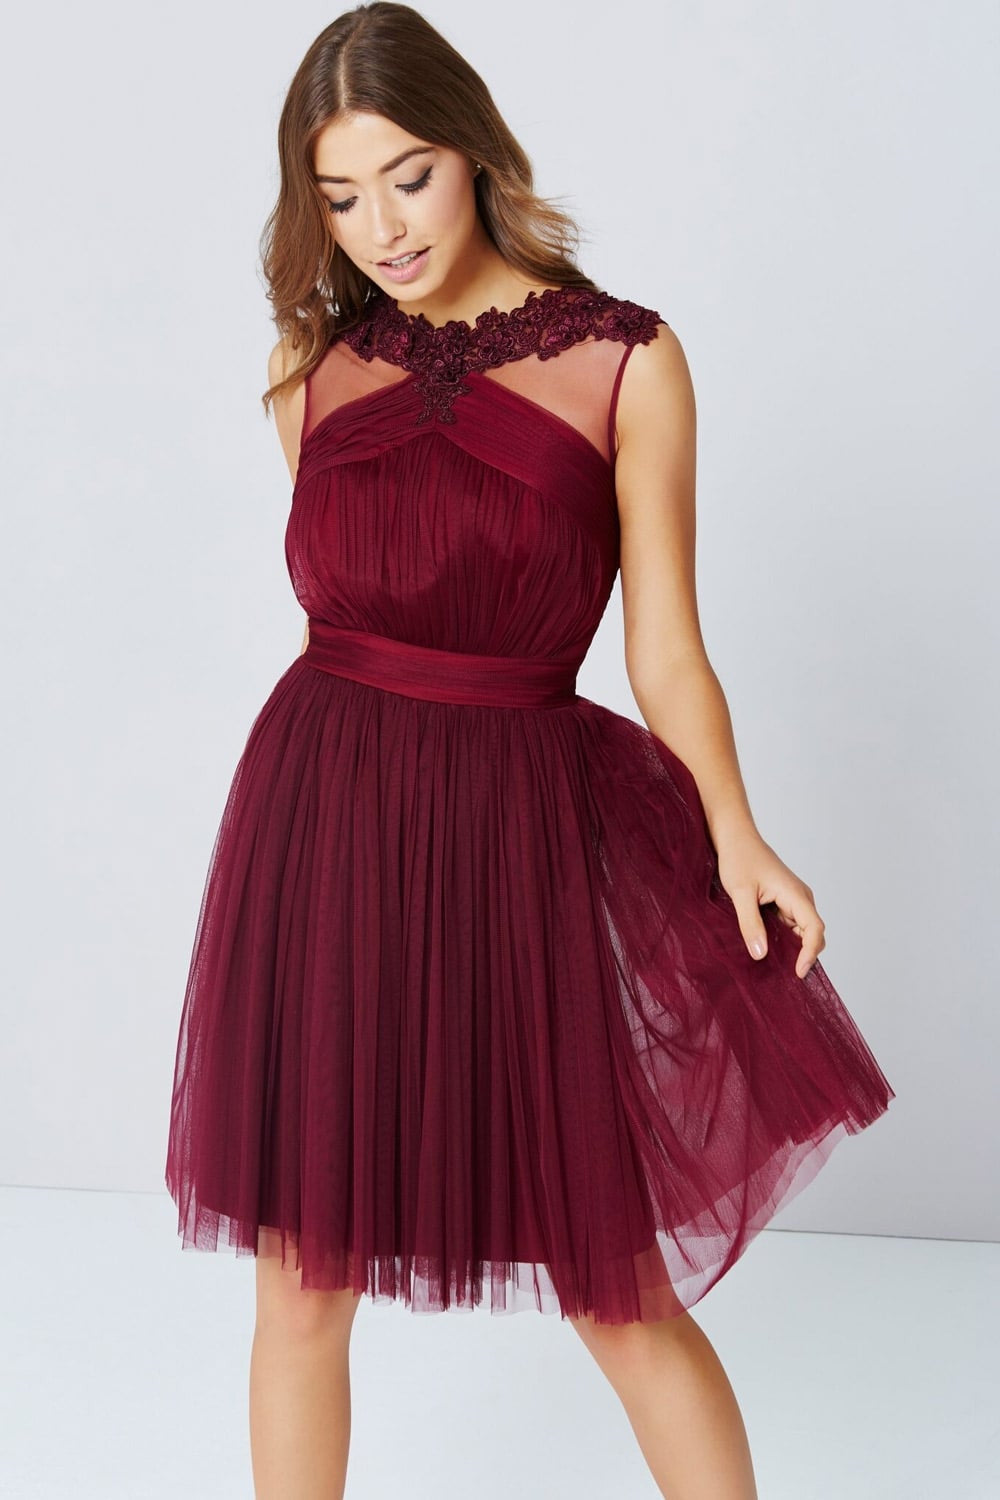 c06dc1c5dd0 Beautiful Red Dresses For Wedding Guests - Data Dynamic AG